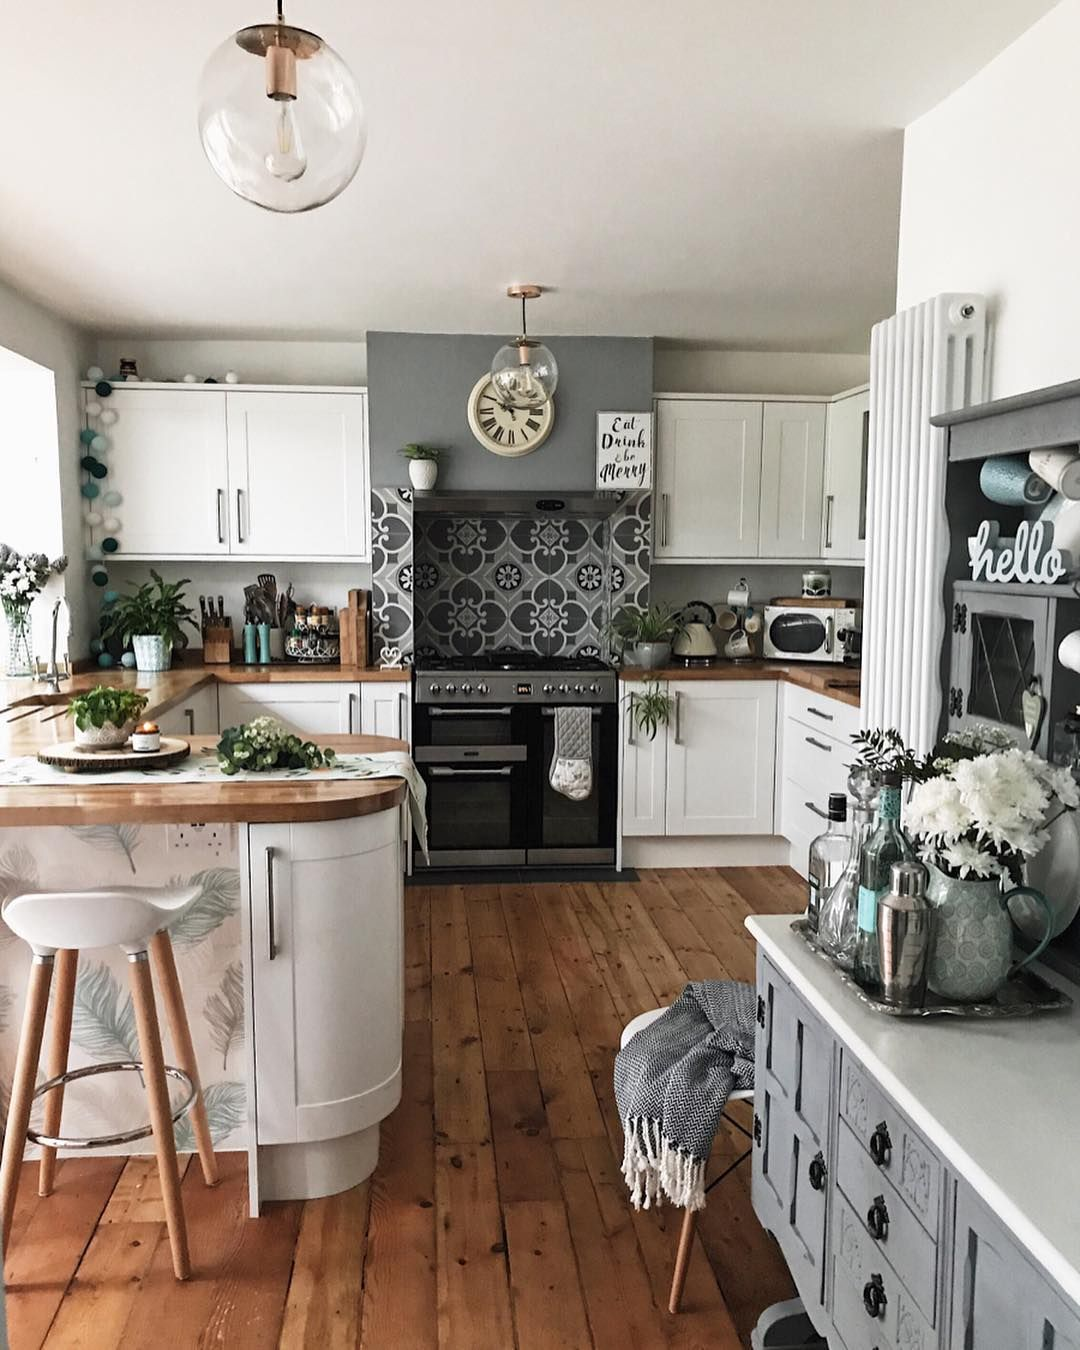 Royal Kitchen Design: Kitchen Tidy Makes Me Smiley 😊 • I've Spent The Morning